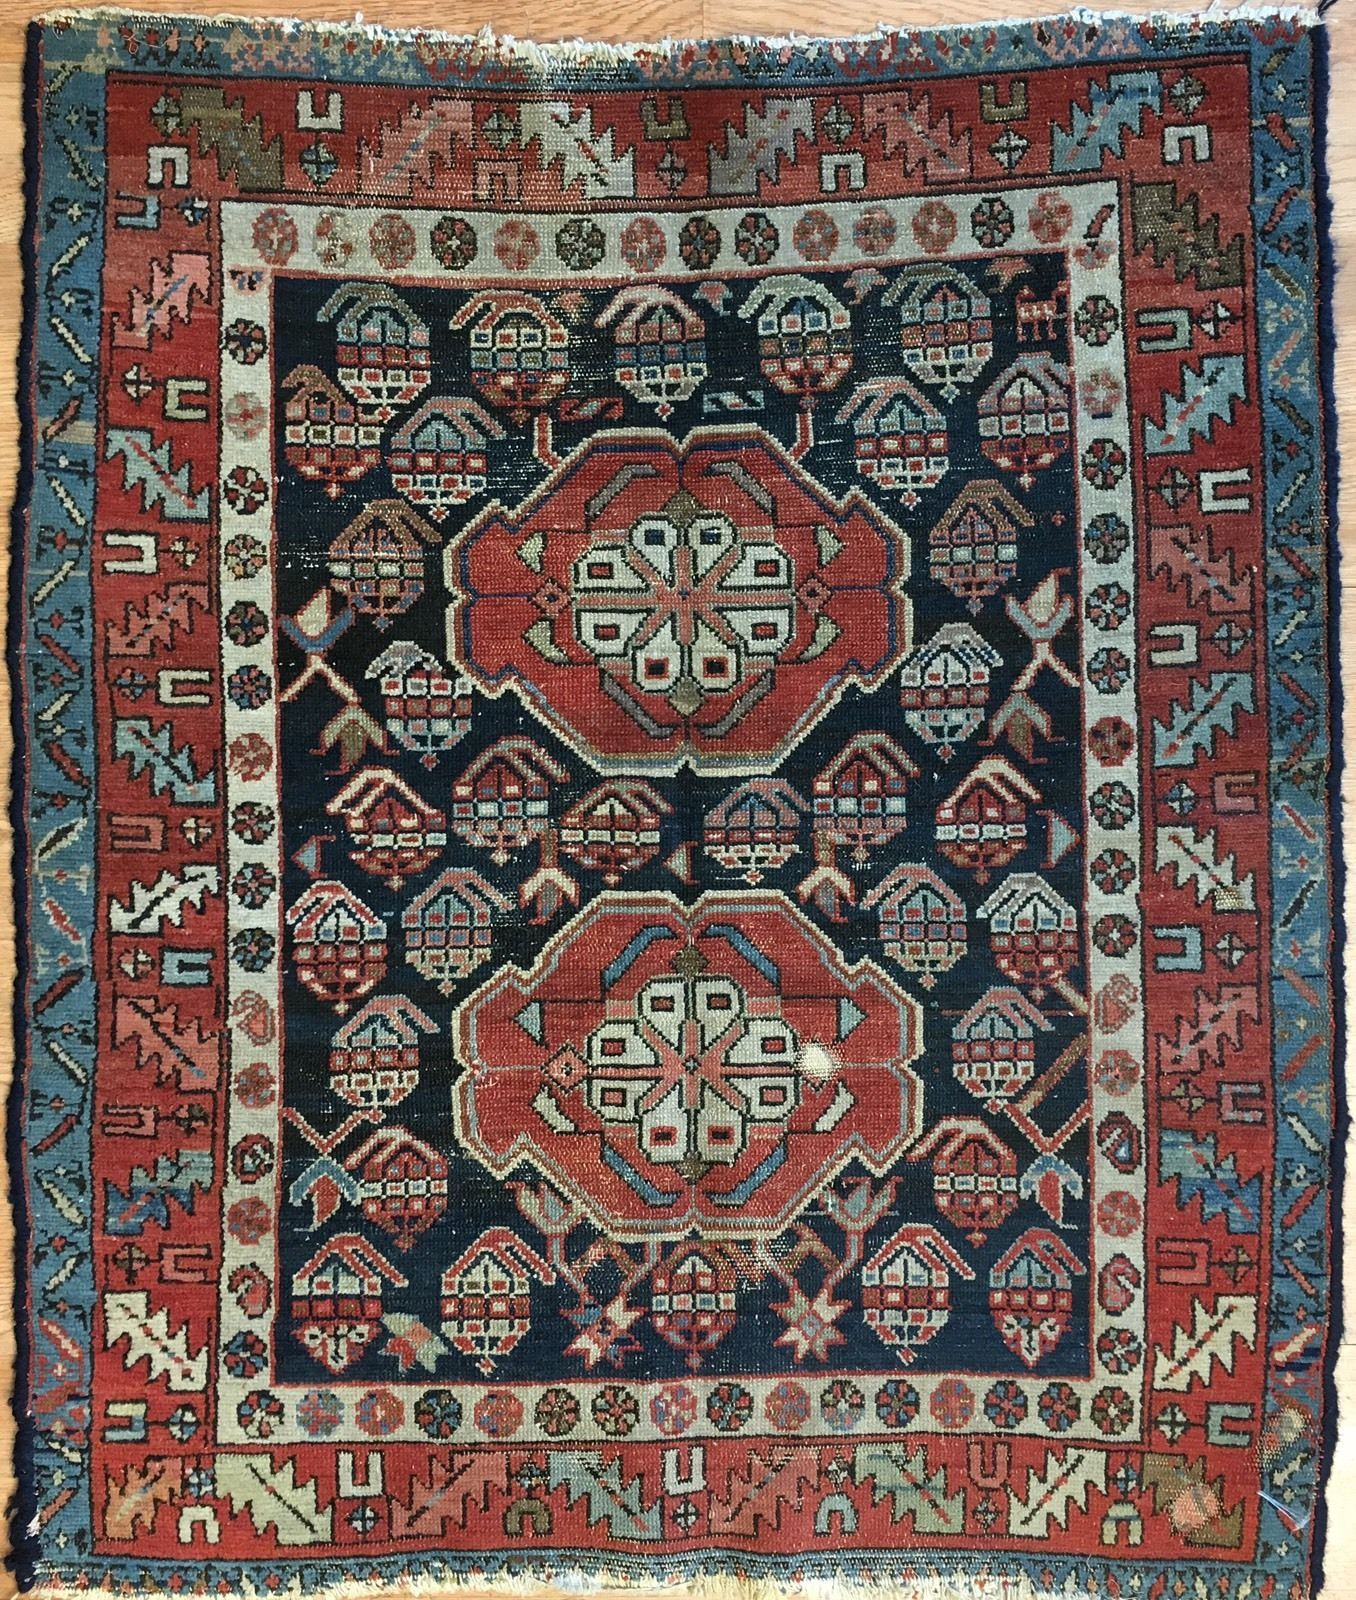 Handsome Heriz 1900s Antique Karaja Rug Persian Tribal Carpet Woven In The Northwest Section Of Iran And Northern Part District